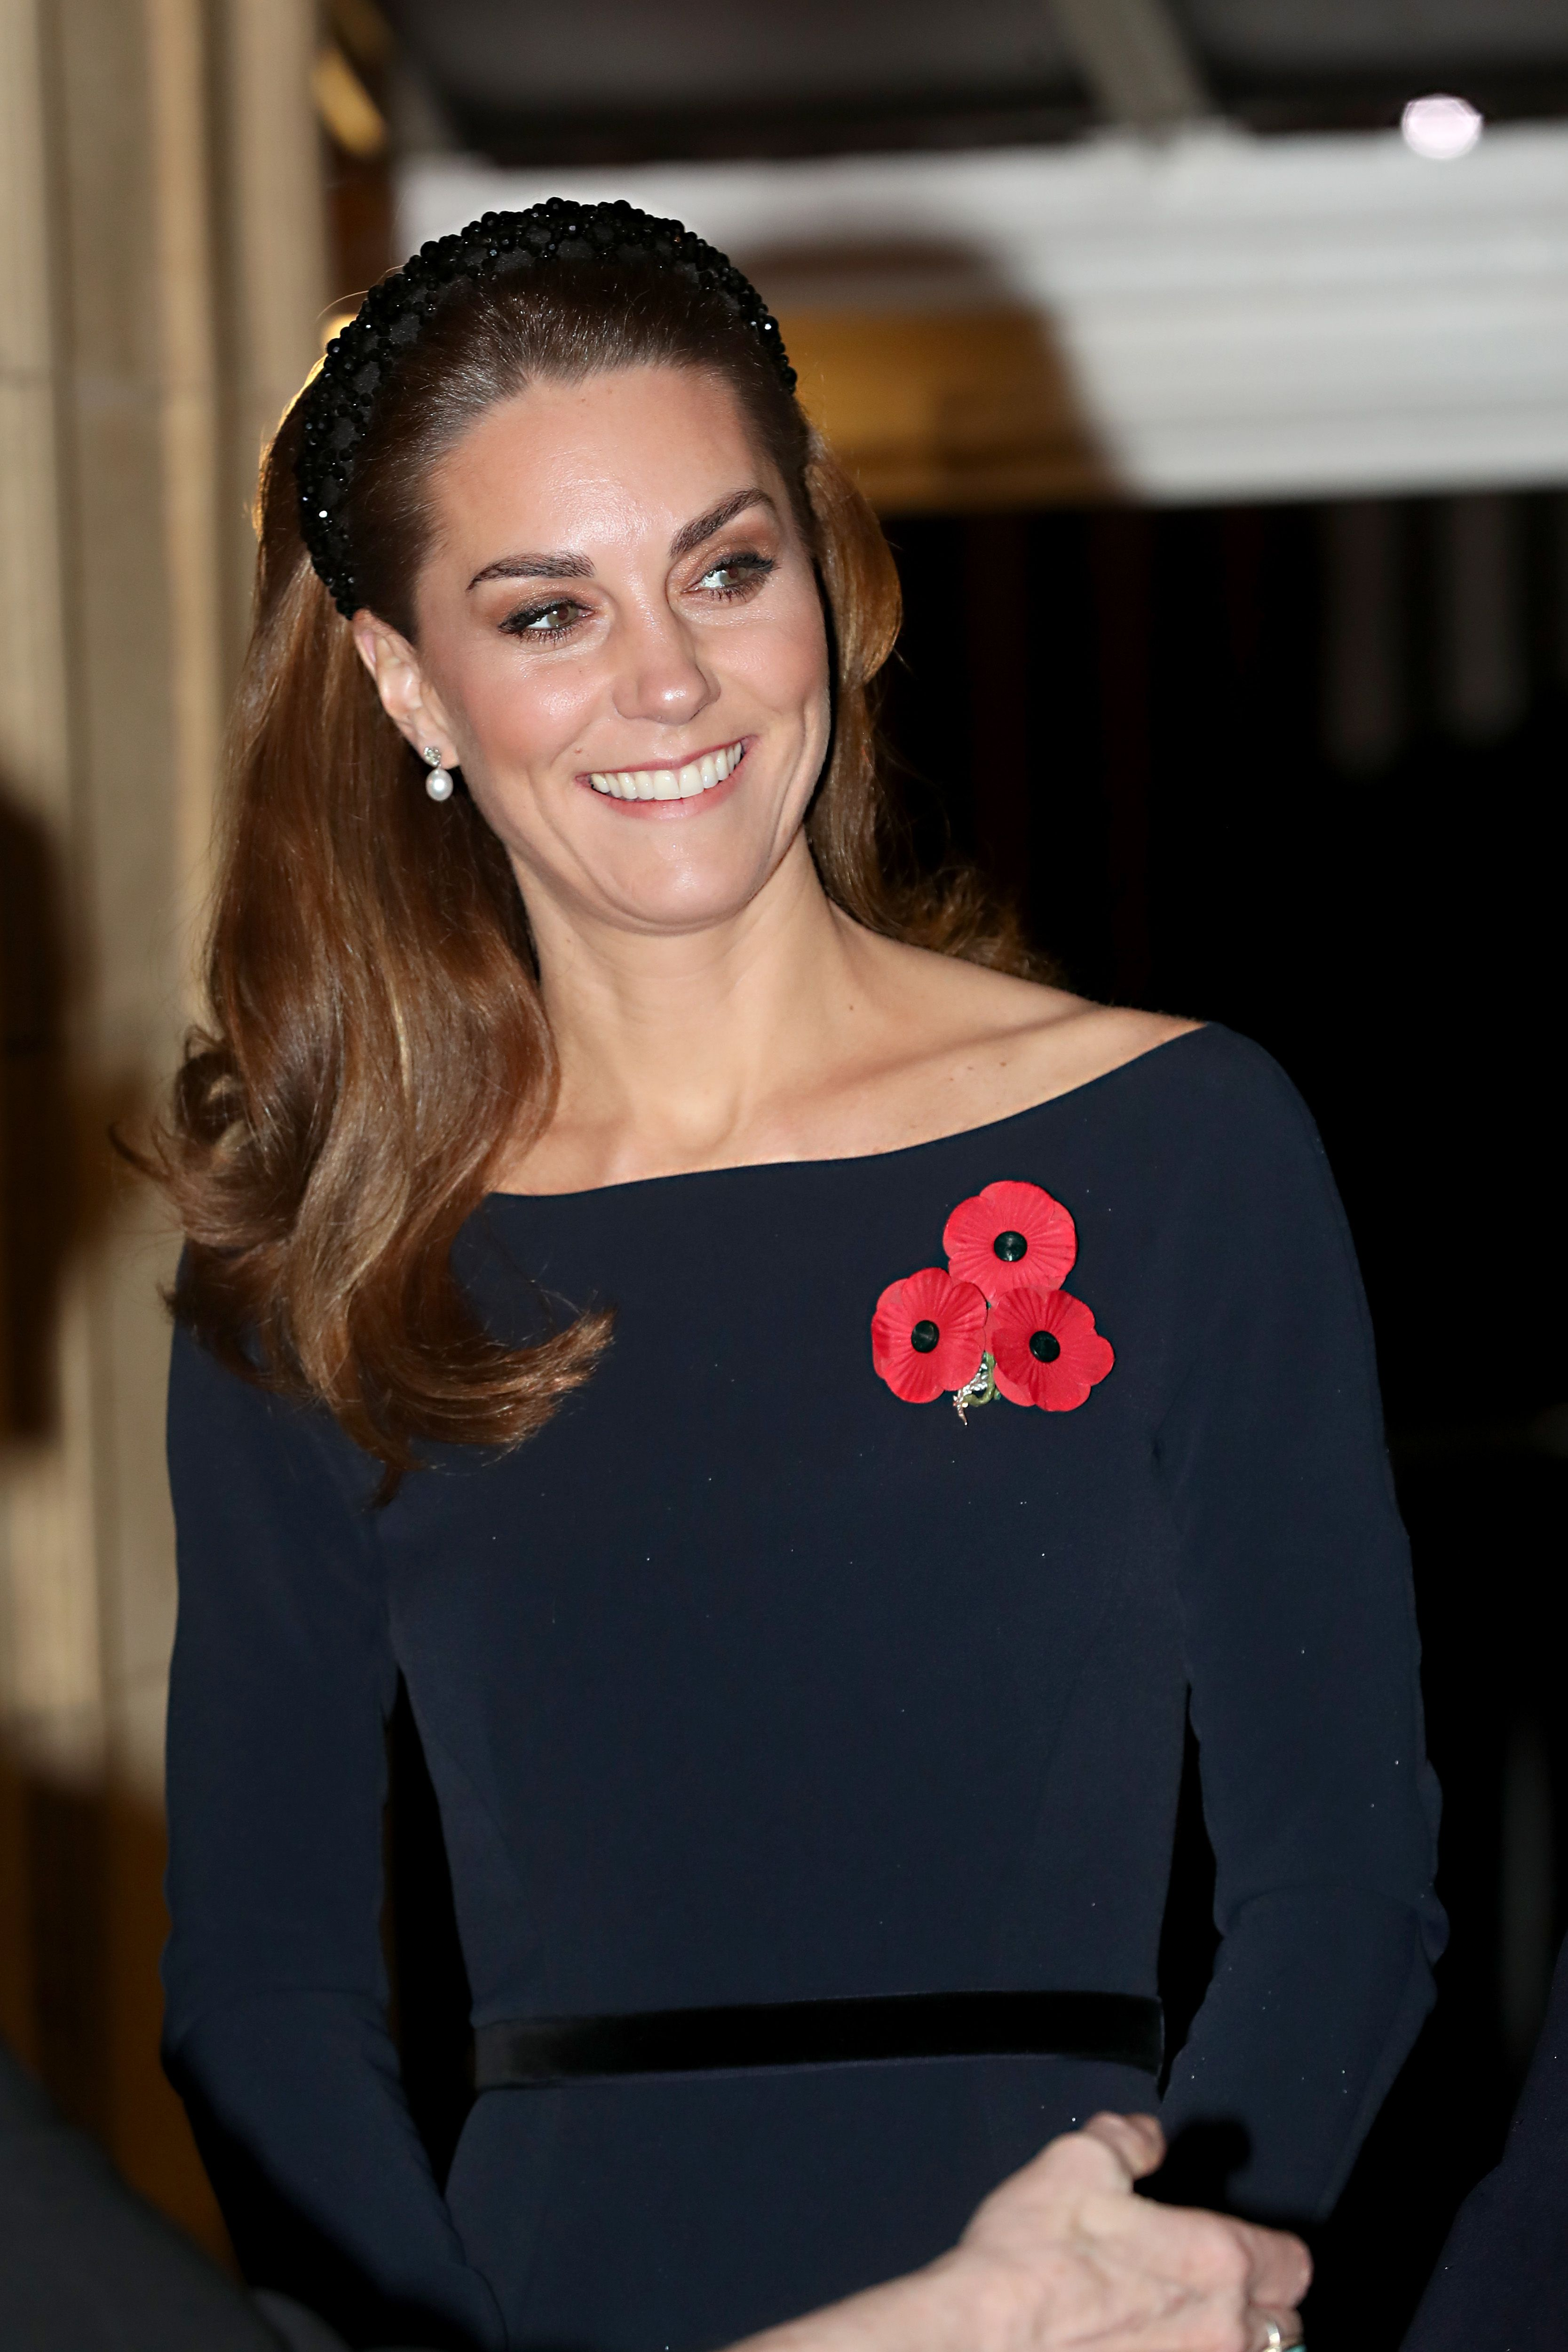 The Duchess of Cambridge wore an on-trend embellished headband to the Festival of Remembrance